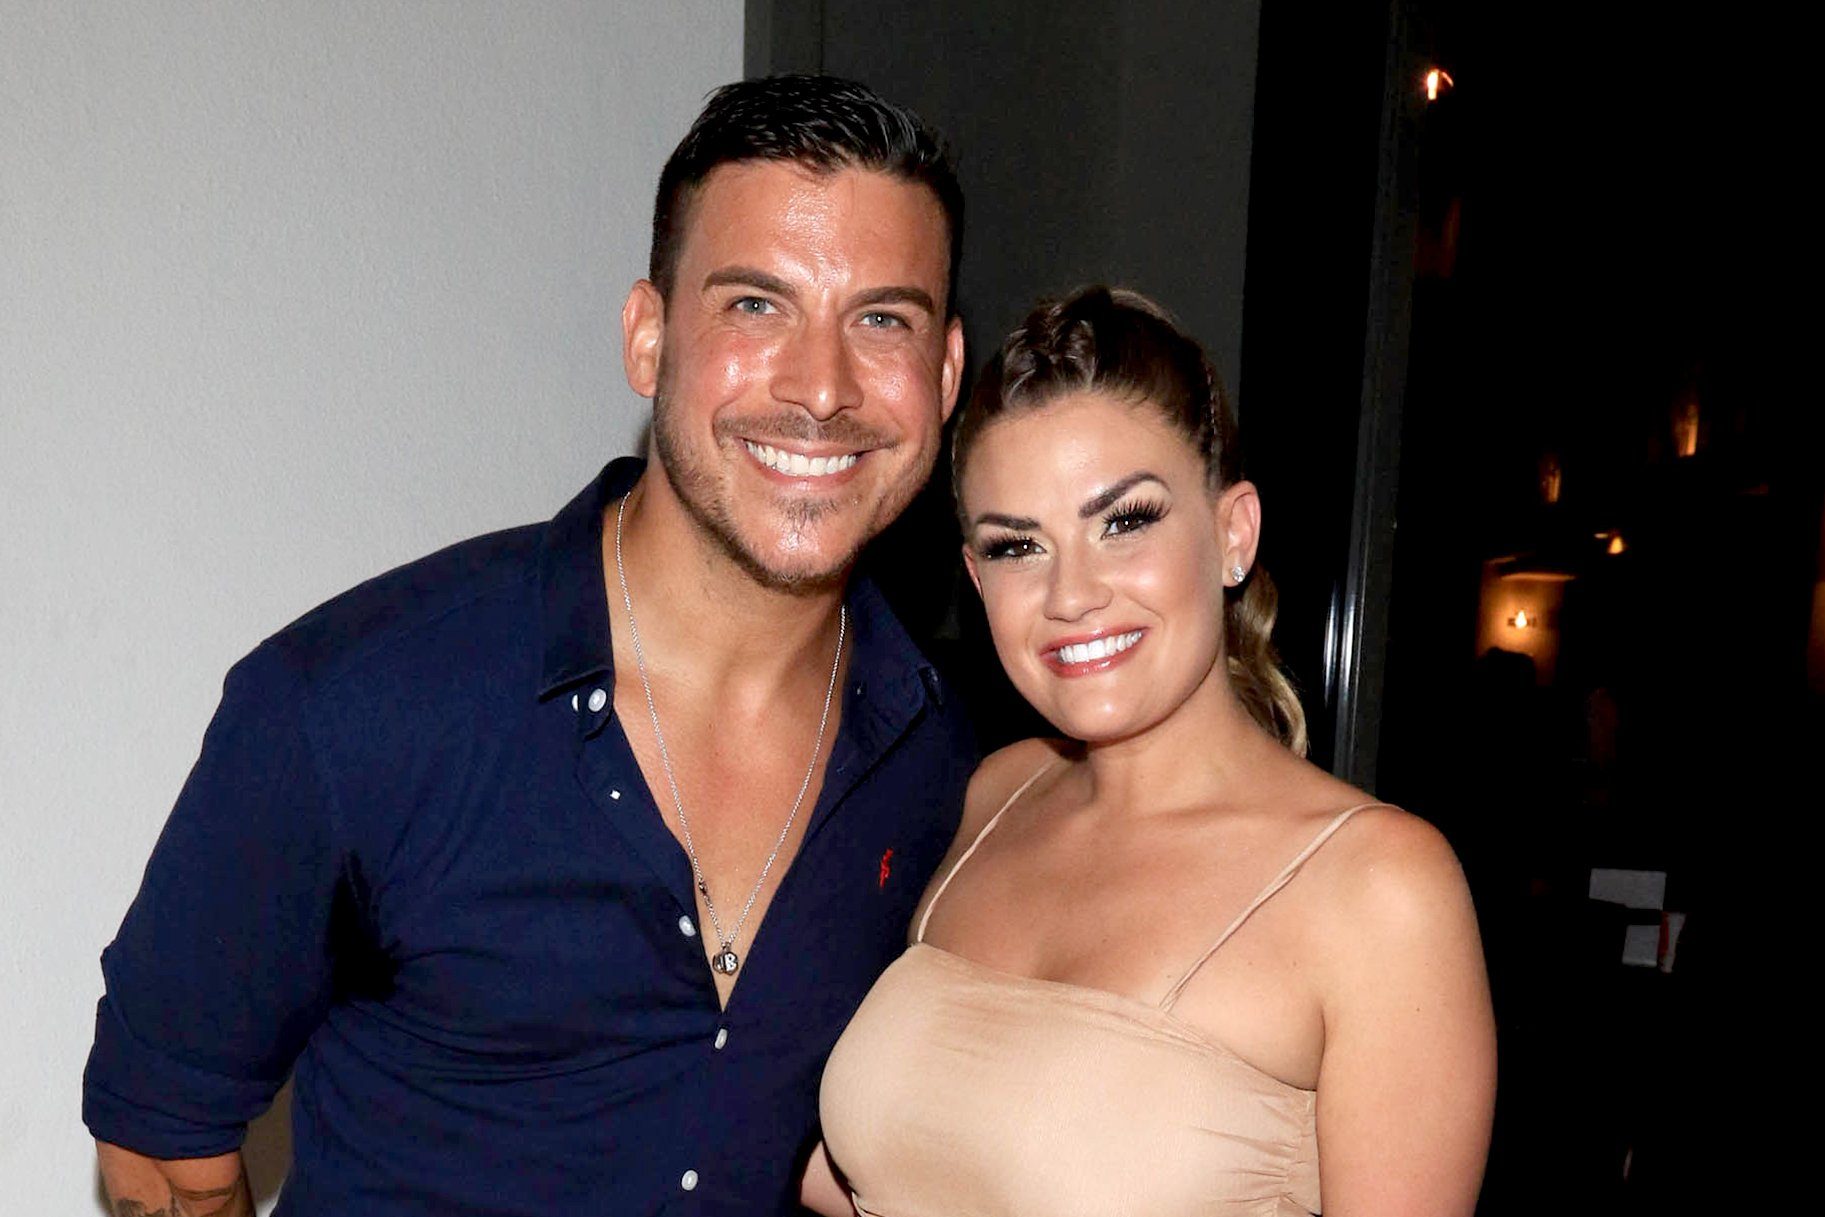 Jax Taylor And Brittany Cartwright – Their 'Vanderpump Rules' Co-Stars Were Reportedly 'Blindsided'  By Their Exit!